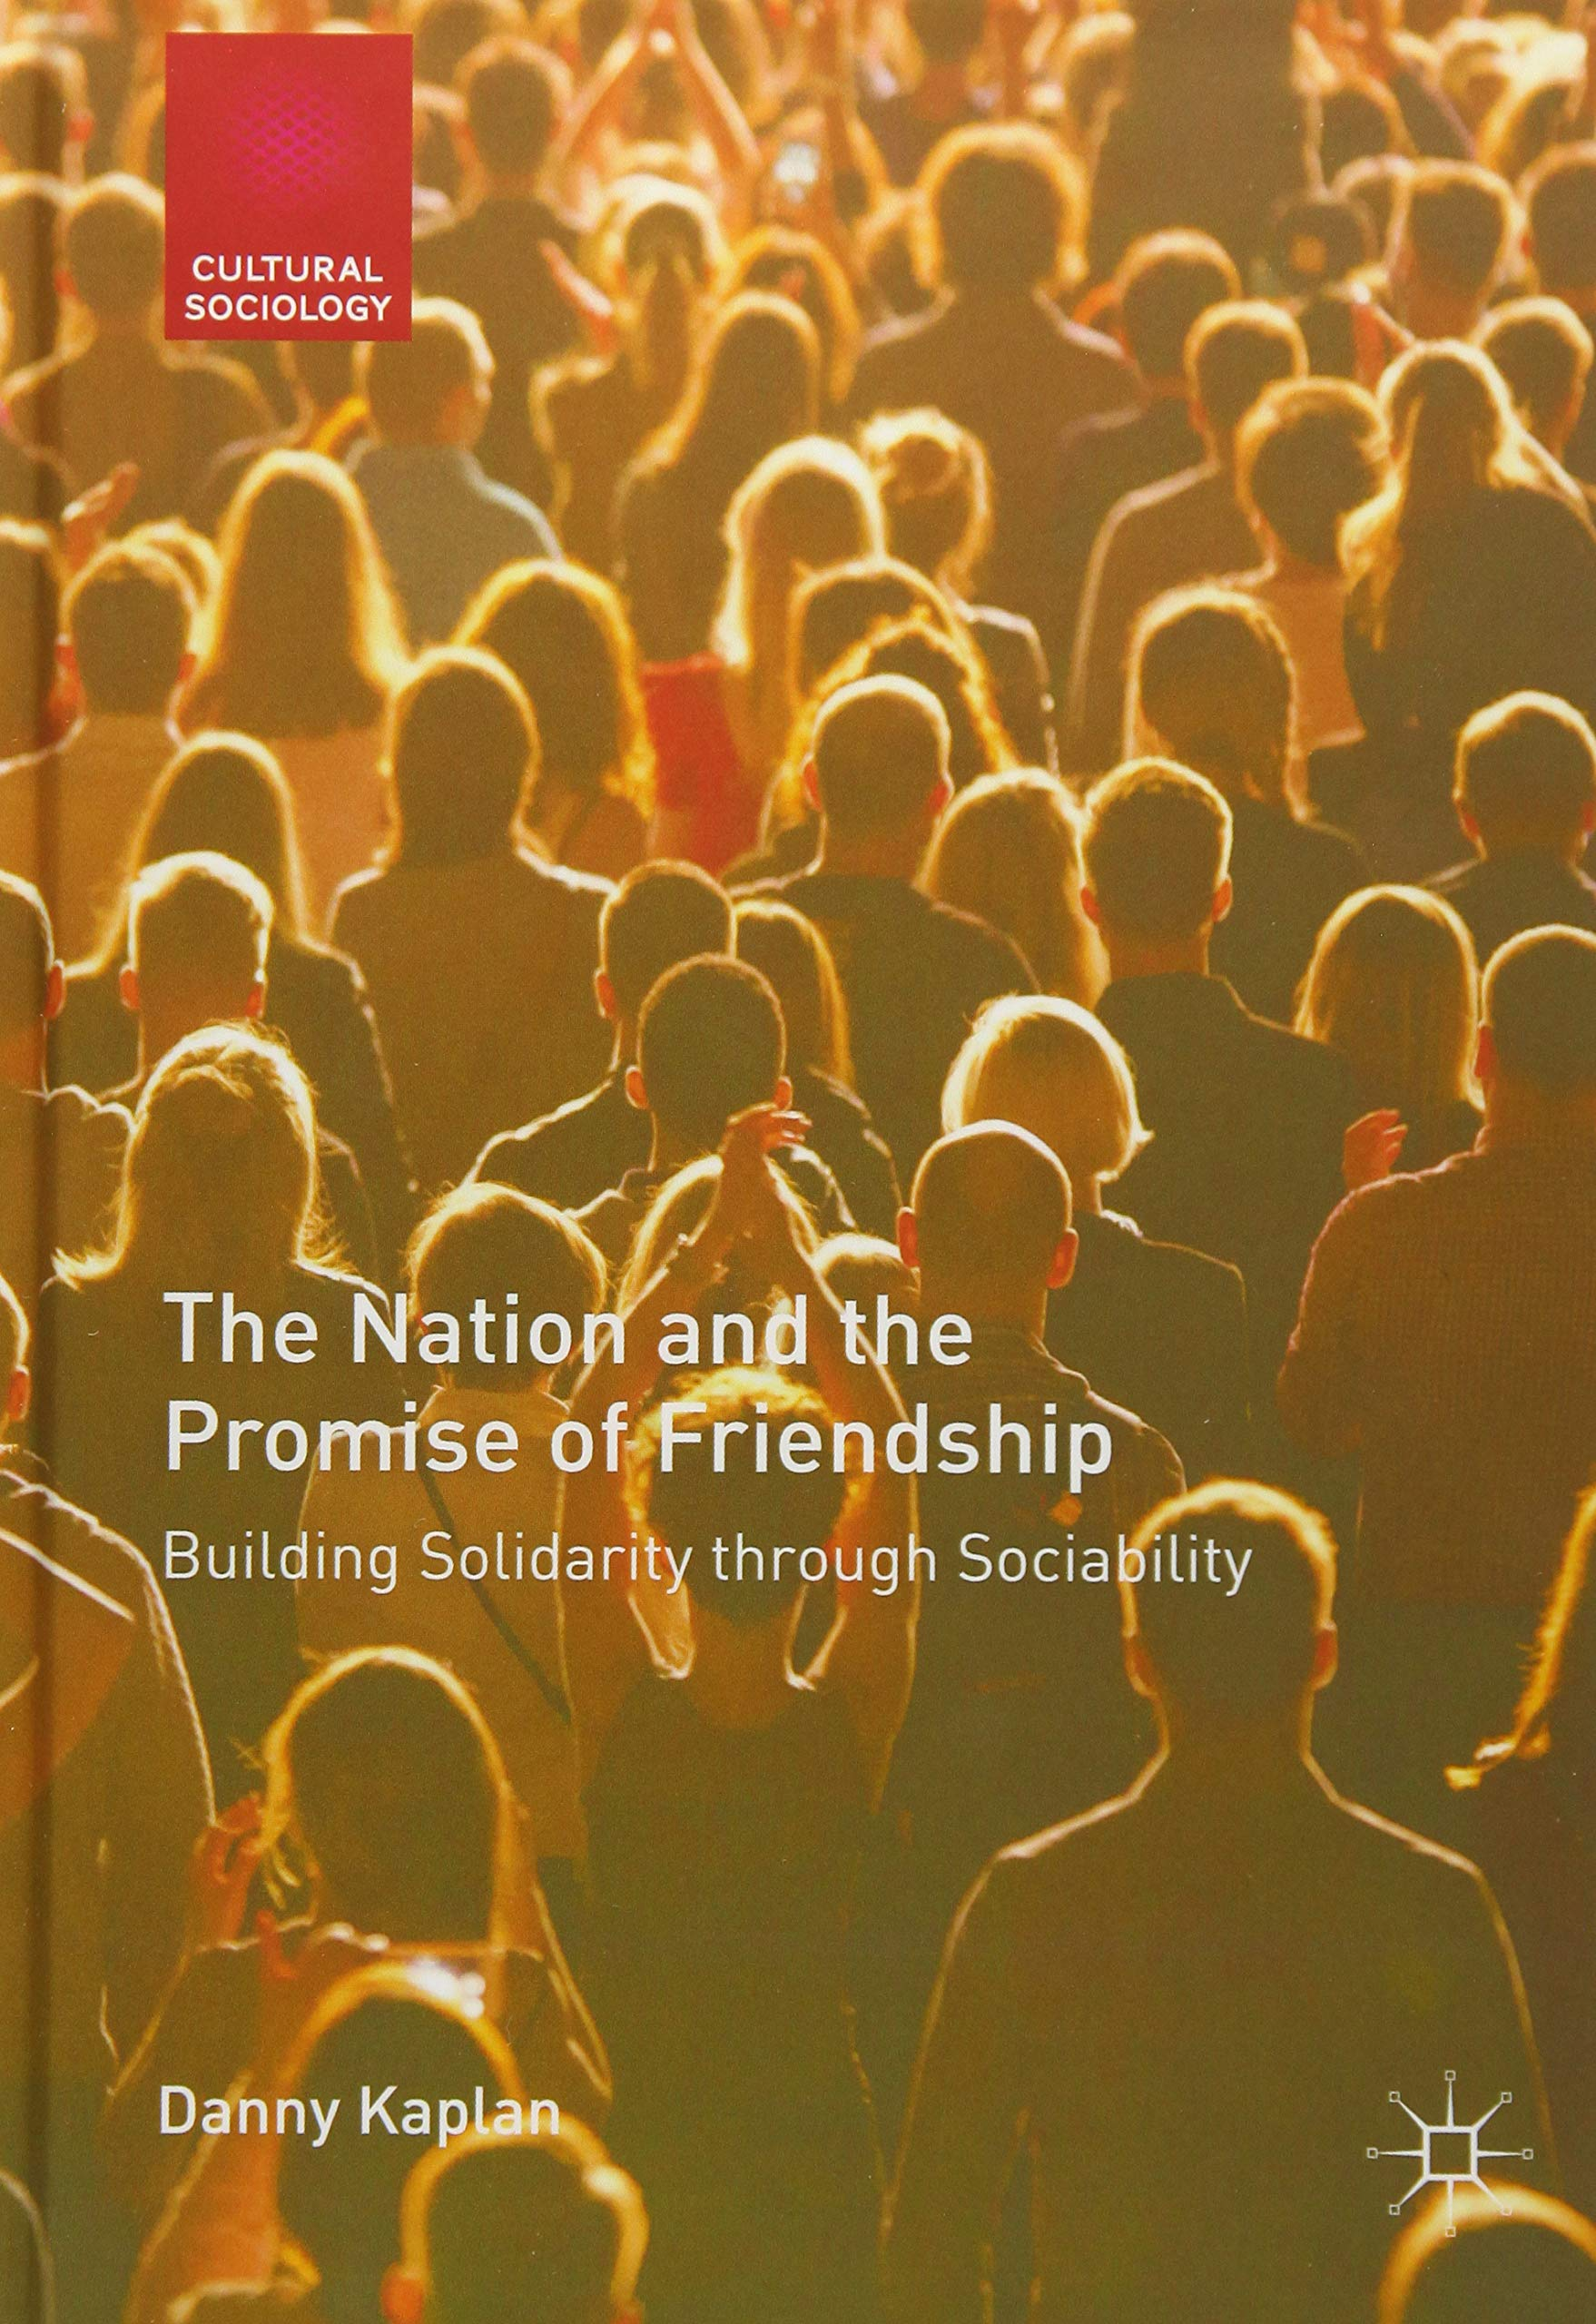 Download The Nation and the Promise of Friendship: Building Solidarity through Sociability (Cultural Sociology) pdf